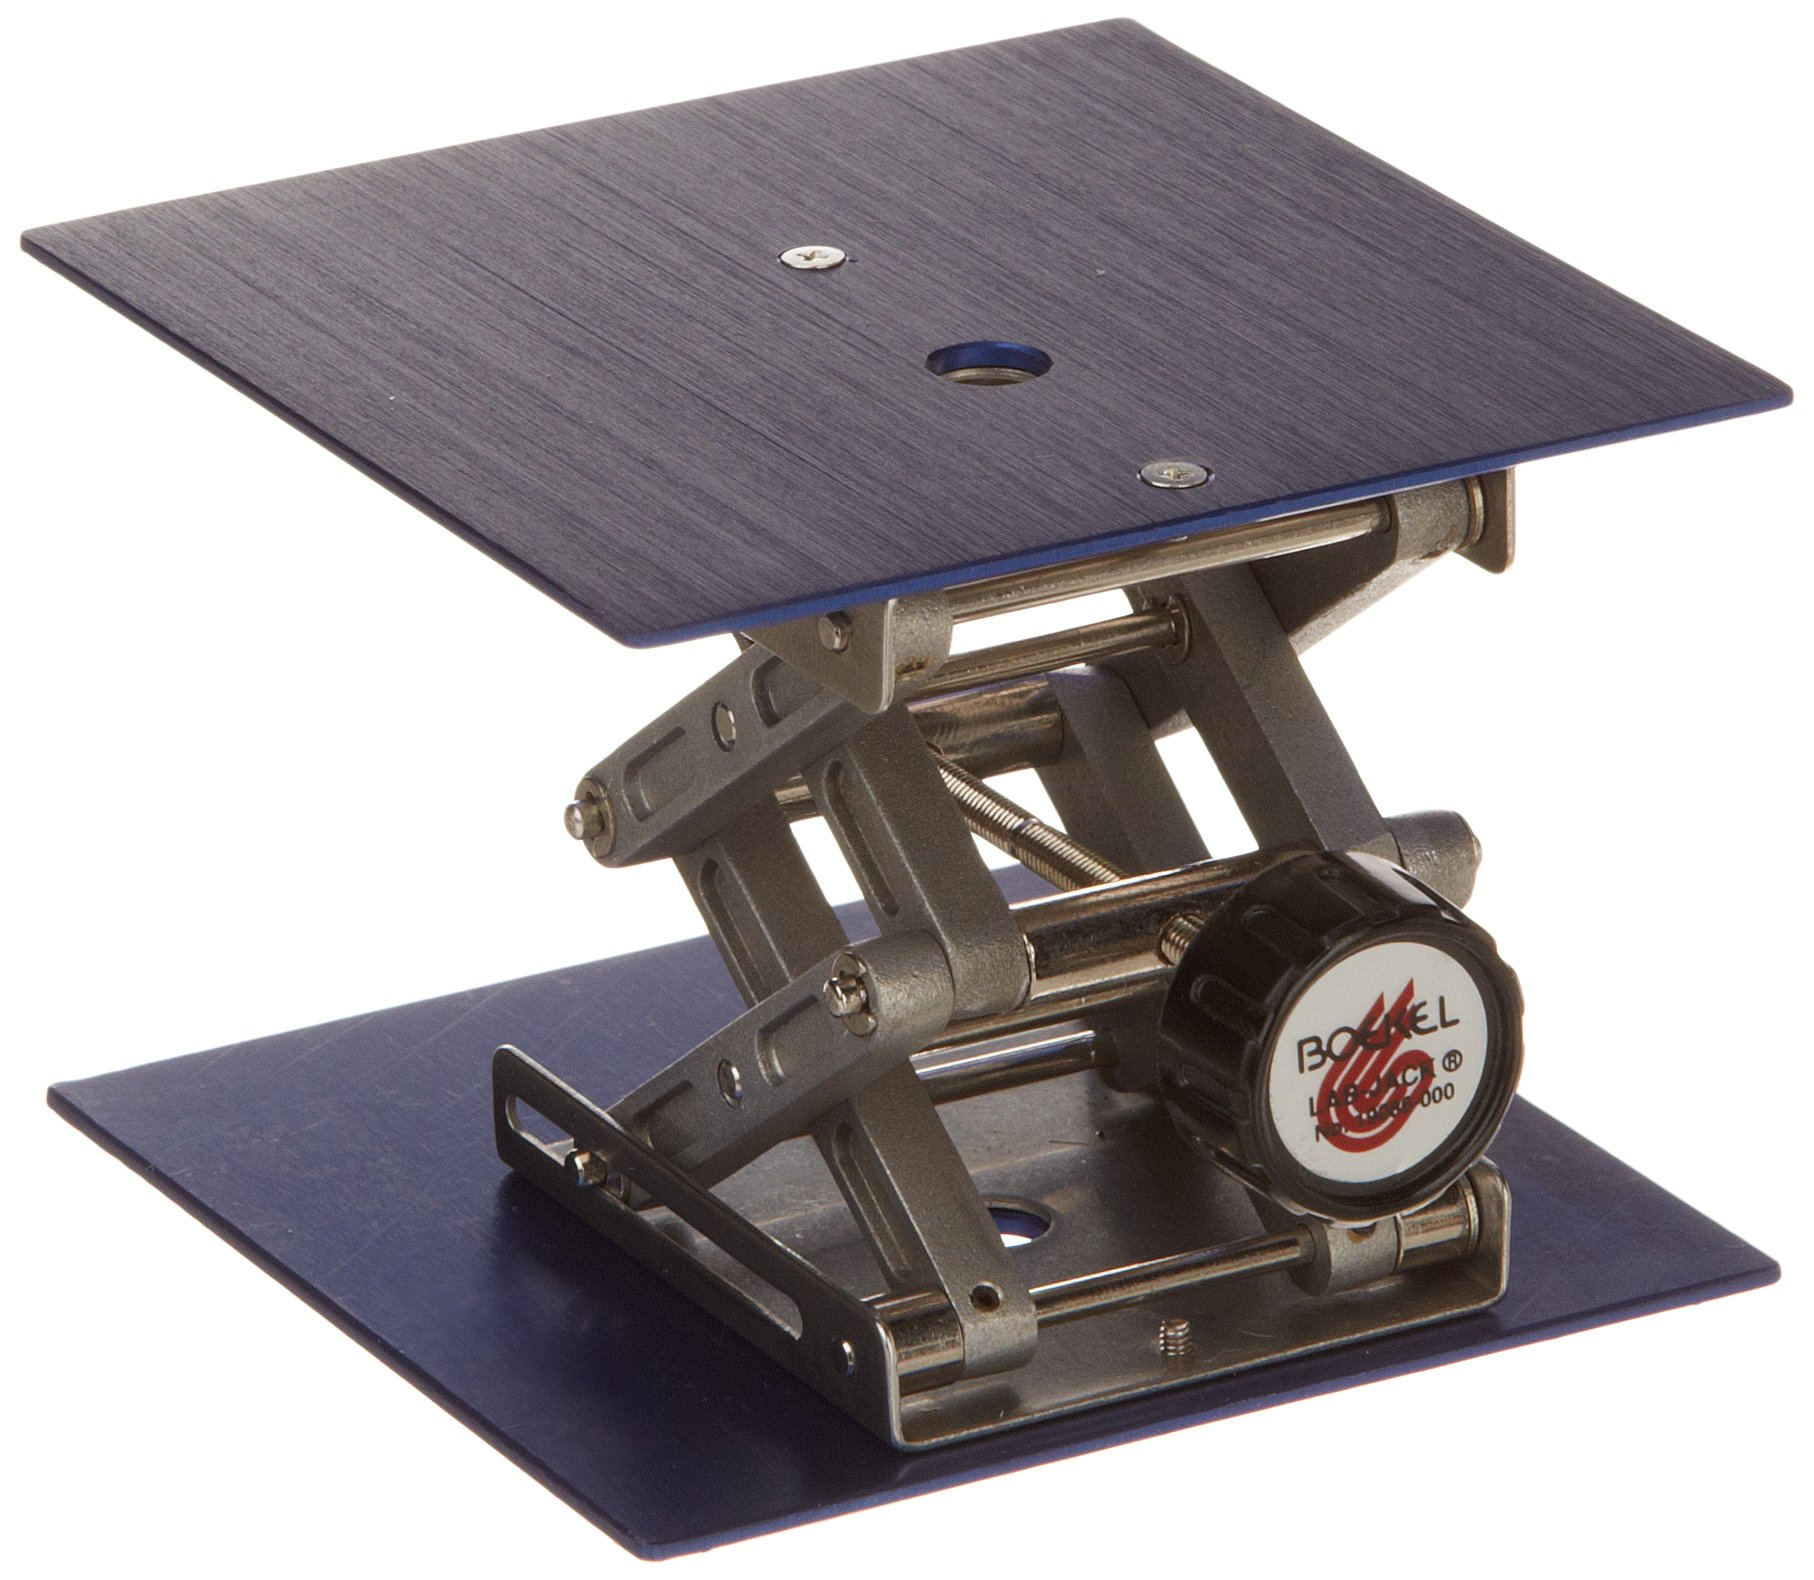 Boekel 19086000 Micro Lab Jack with 3'' x 3'' Anodized Metal Platform by Boekel Industries